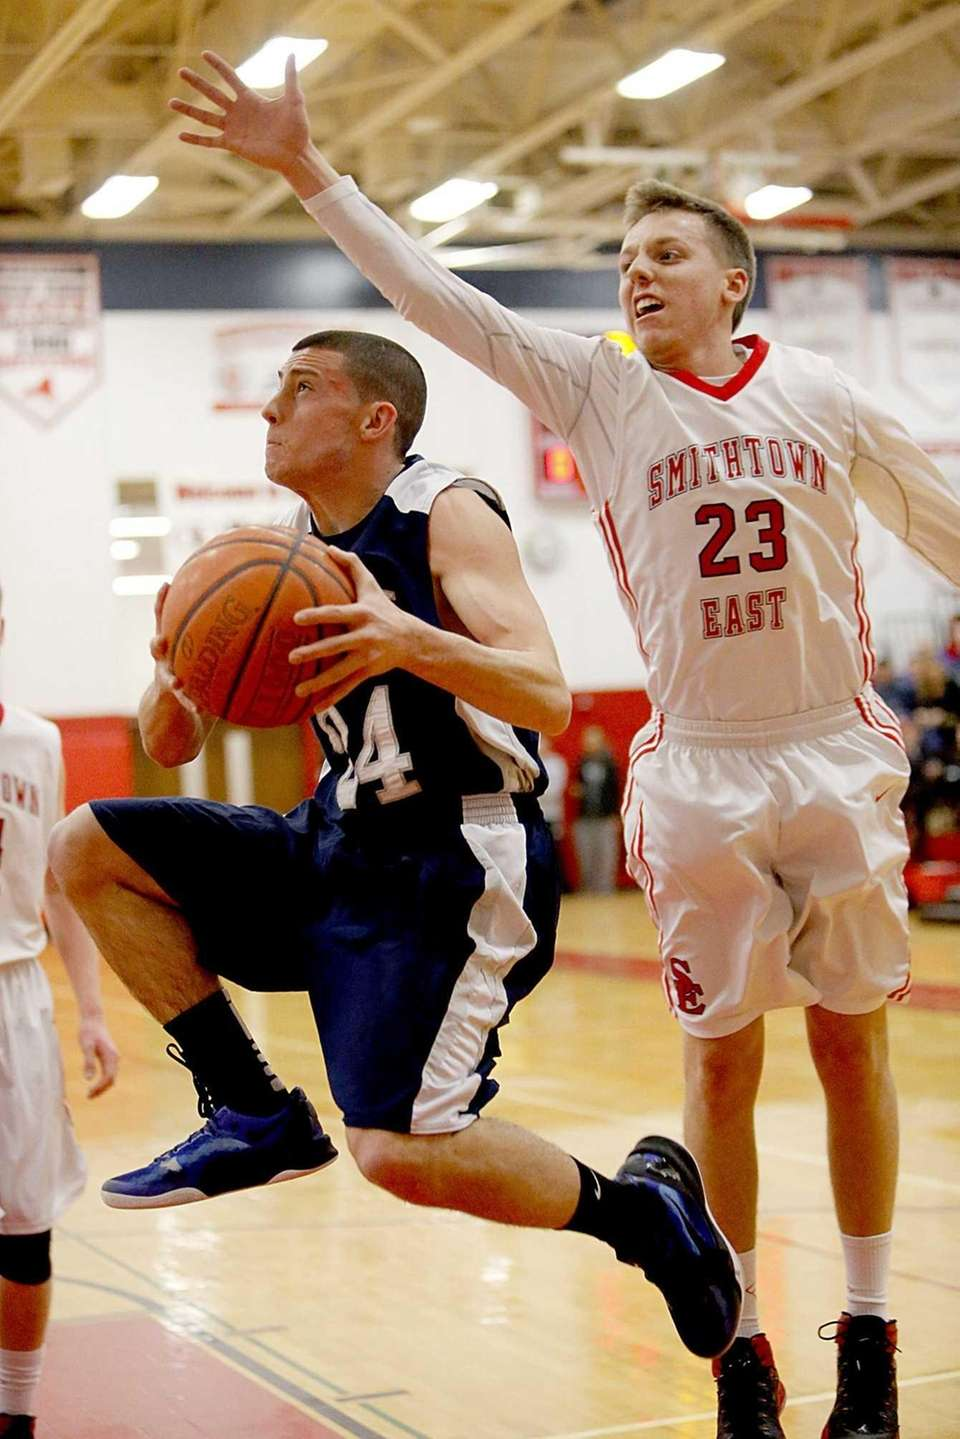 Eastport-South Manor's Mike Cestare drives along the baseline